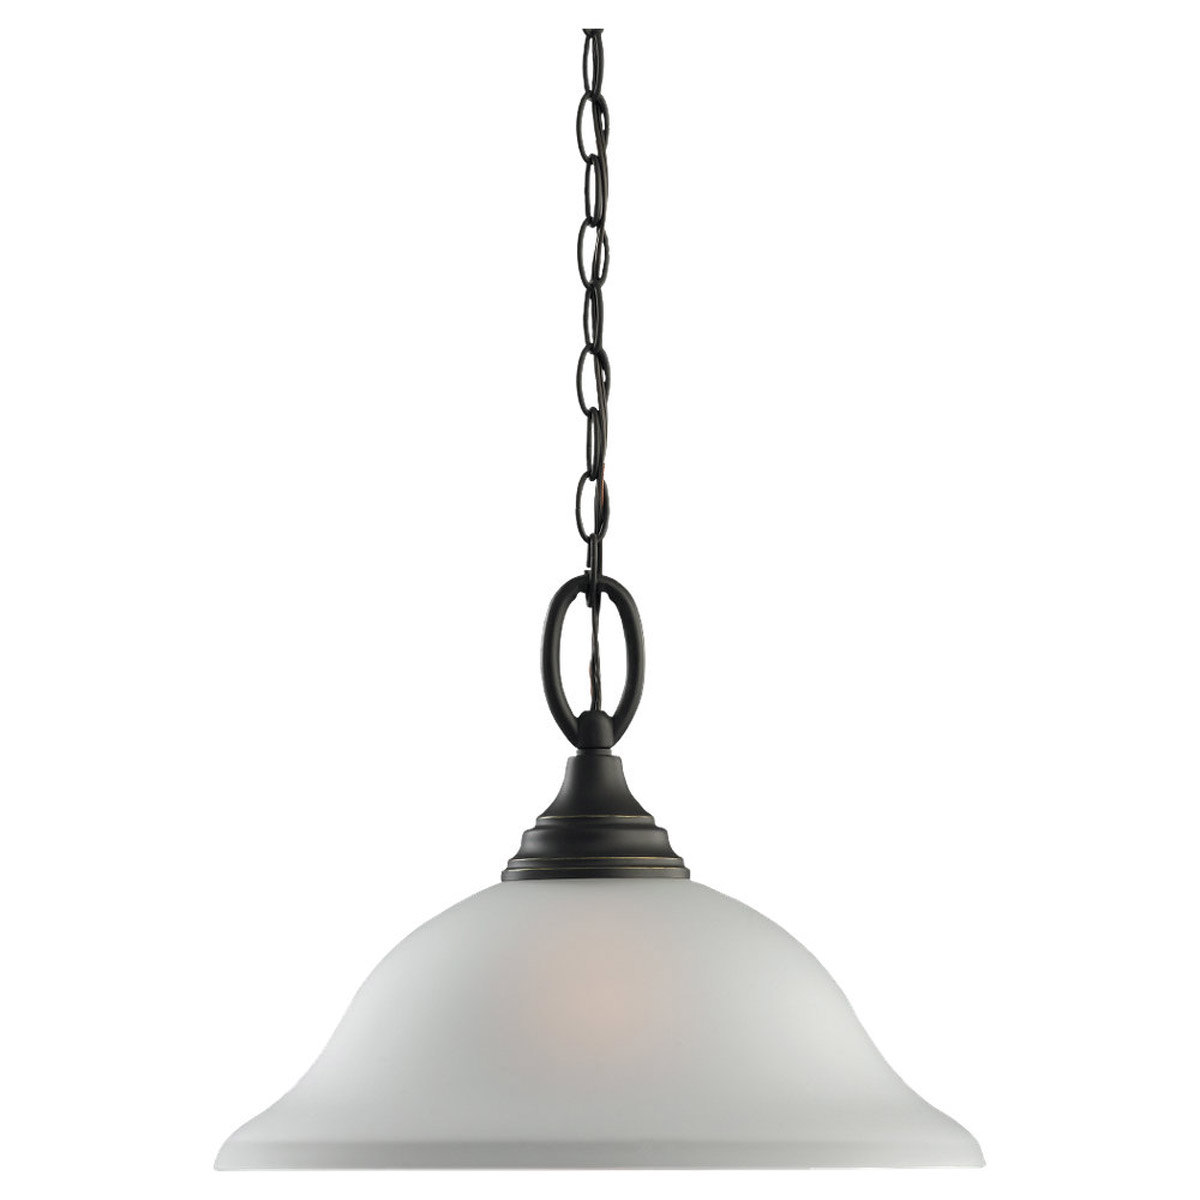 Sea Gull 65625BLE-782 Wheaton 1 Light 15 inch Heirloom Bronze Pendant Ceiling Light in Fluorescent photo